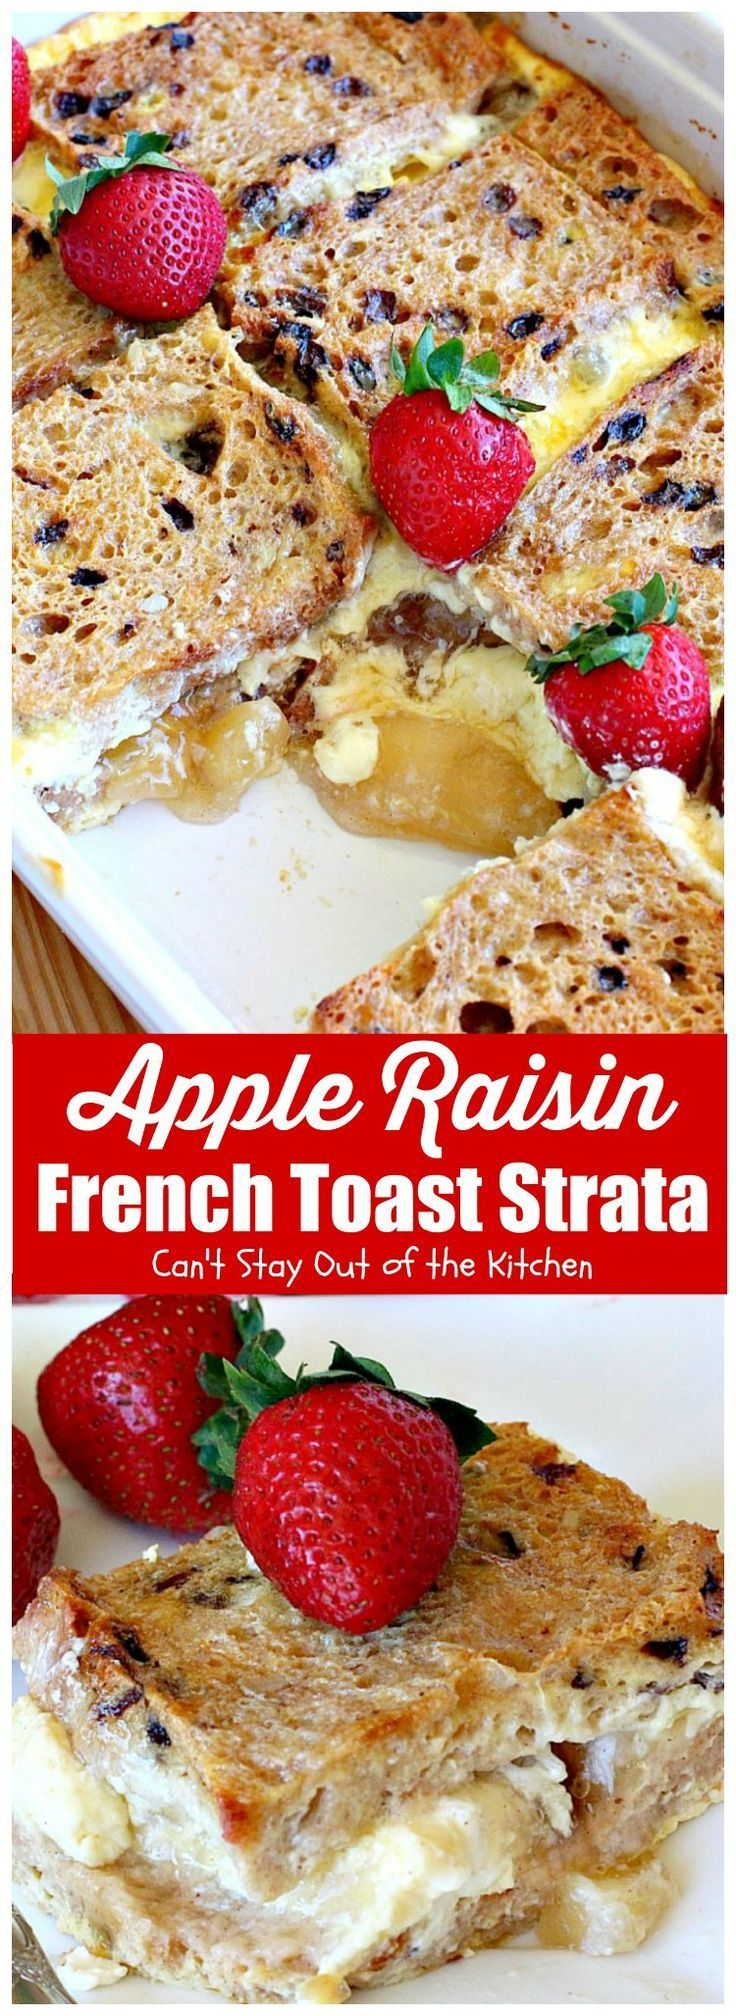 Apple Raisin French Toast Strata Recipe in 2020 Food